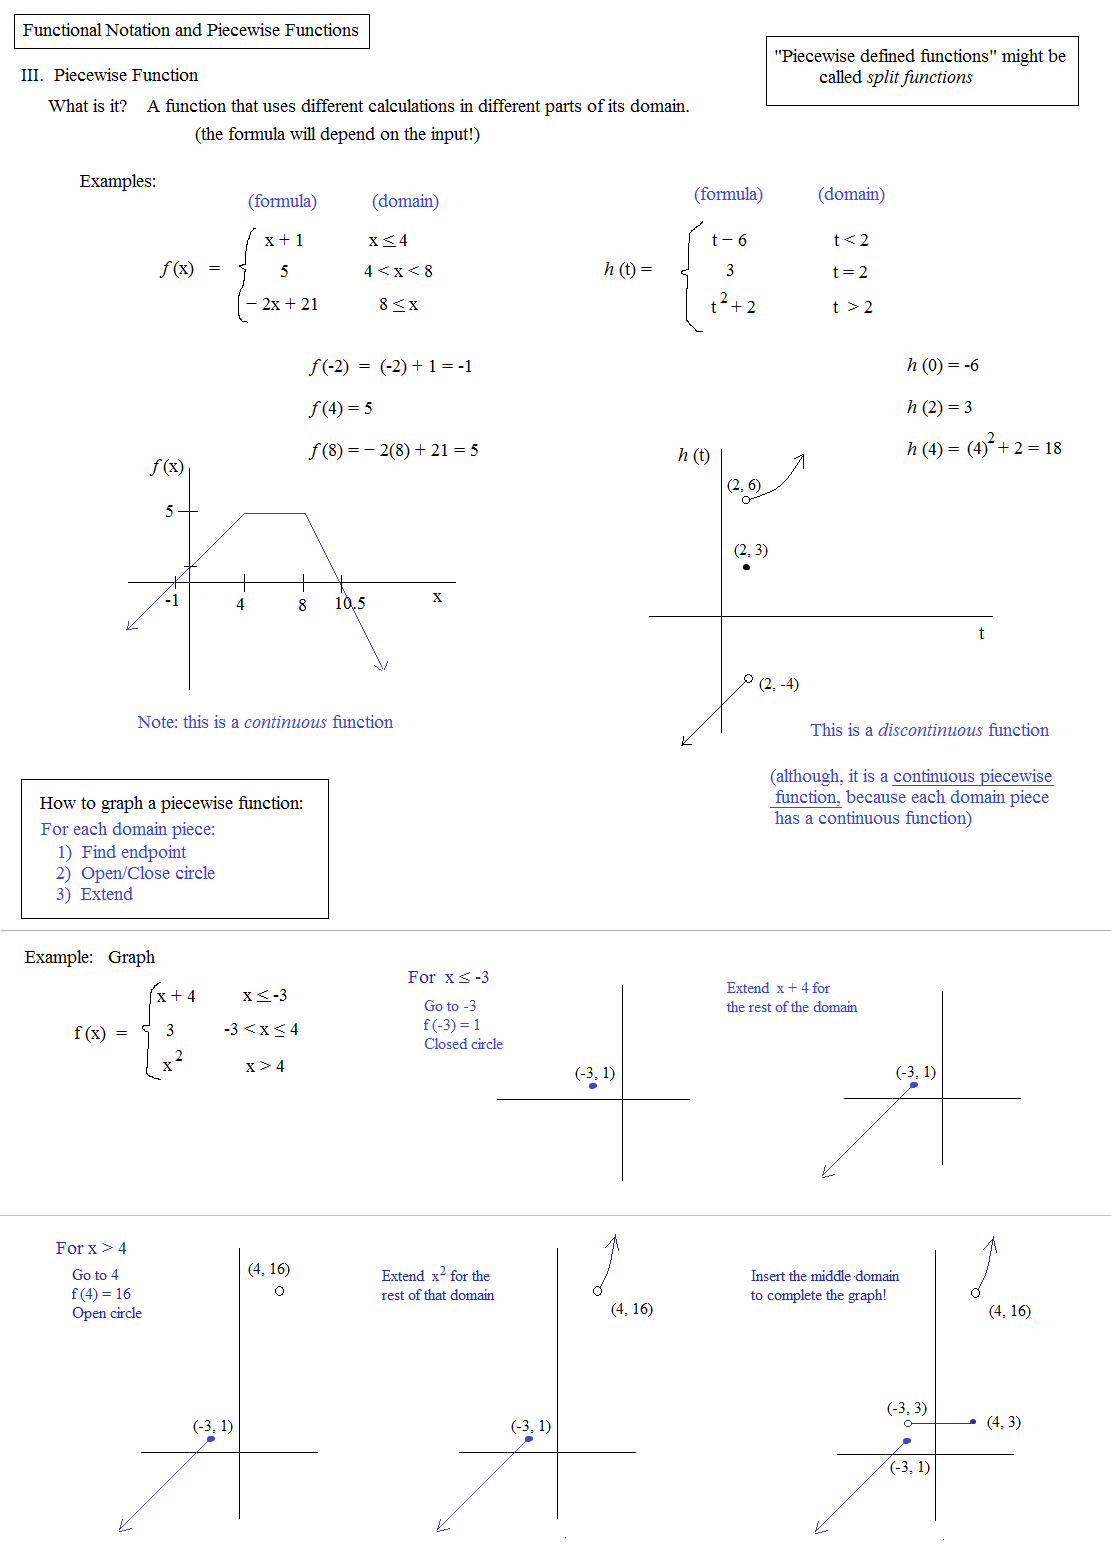 Function Notation Worksheet Multiple Choice